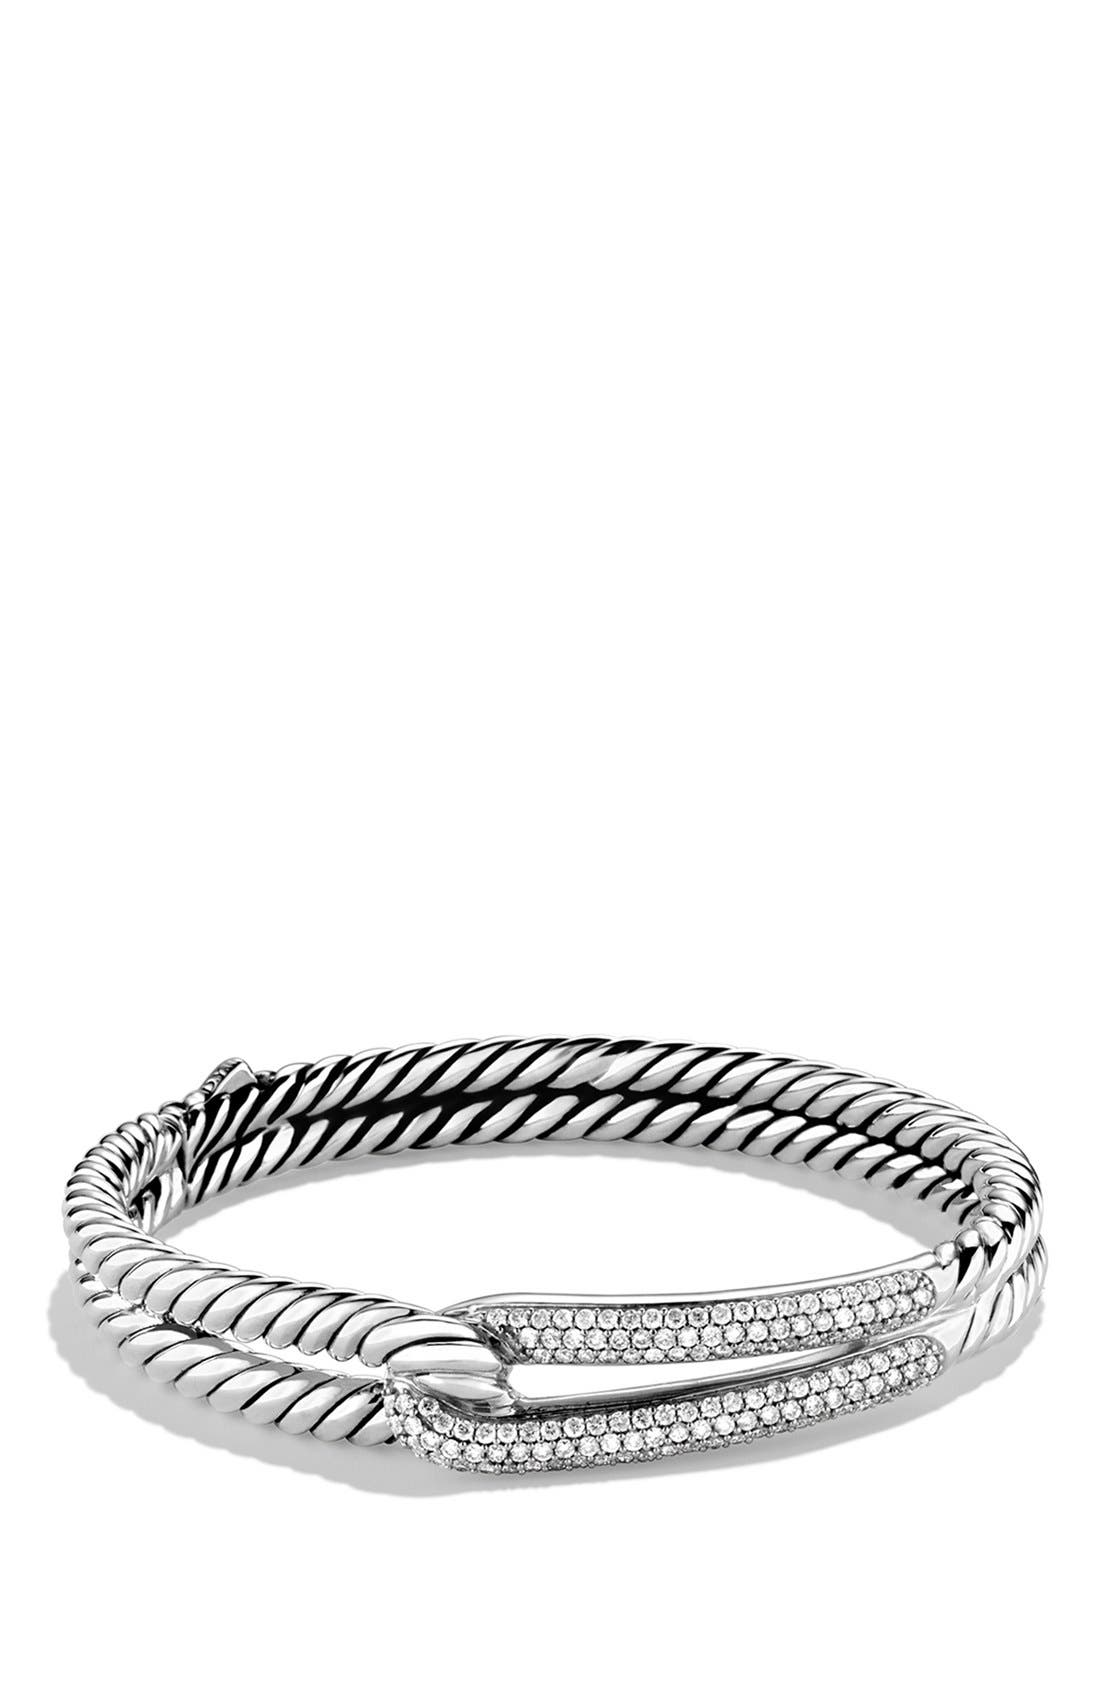 DAVID YURMAN Labyrinth Single-Loop Bracelet with Diamonds